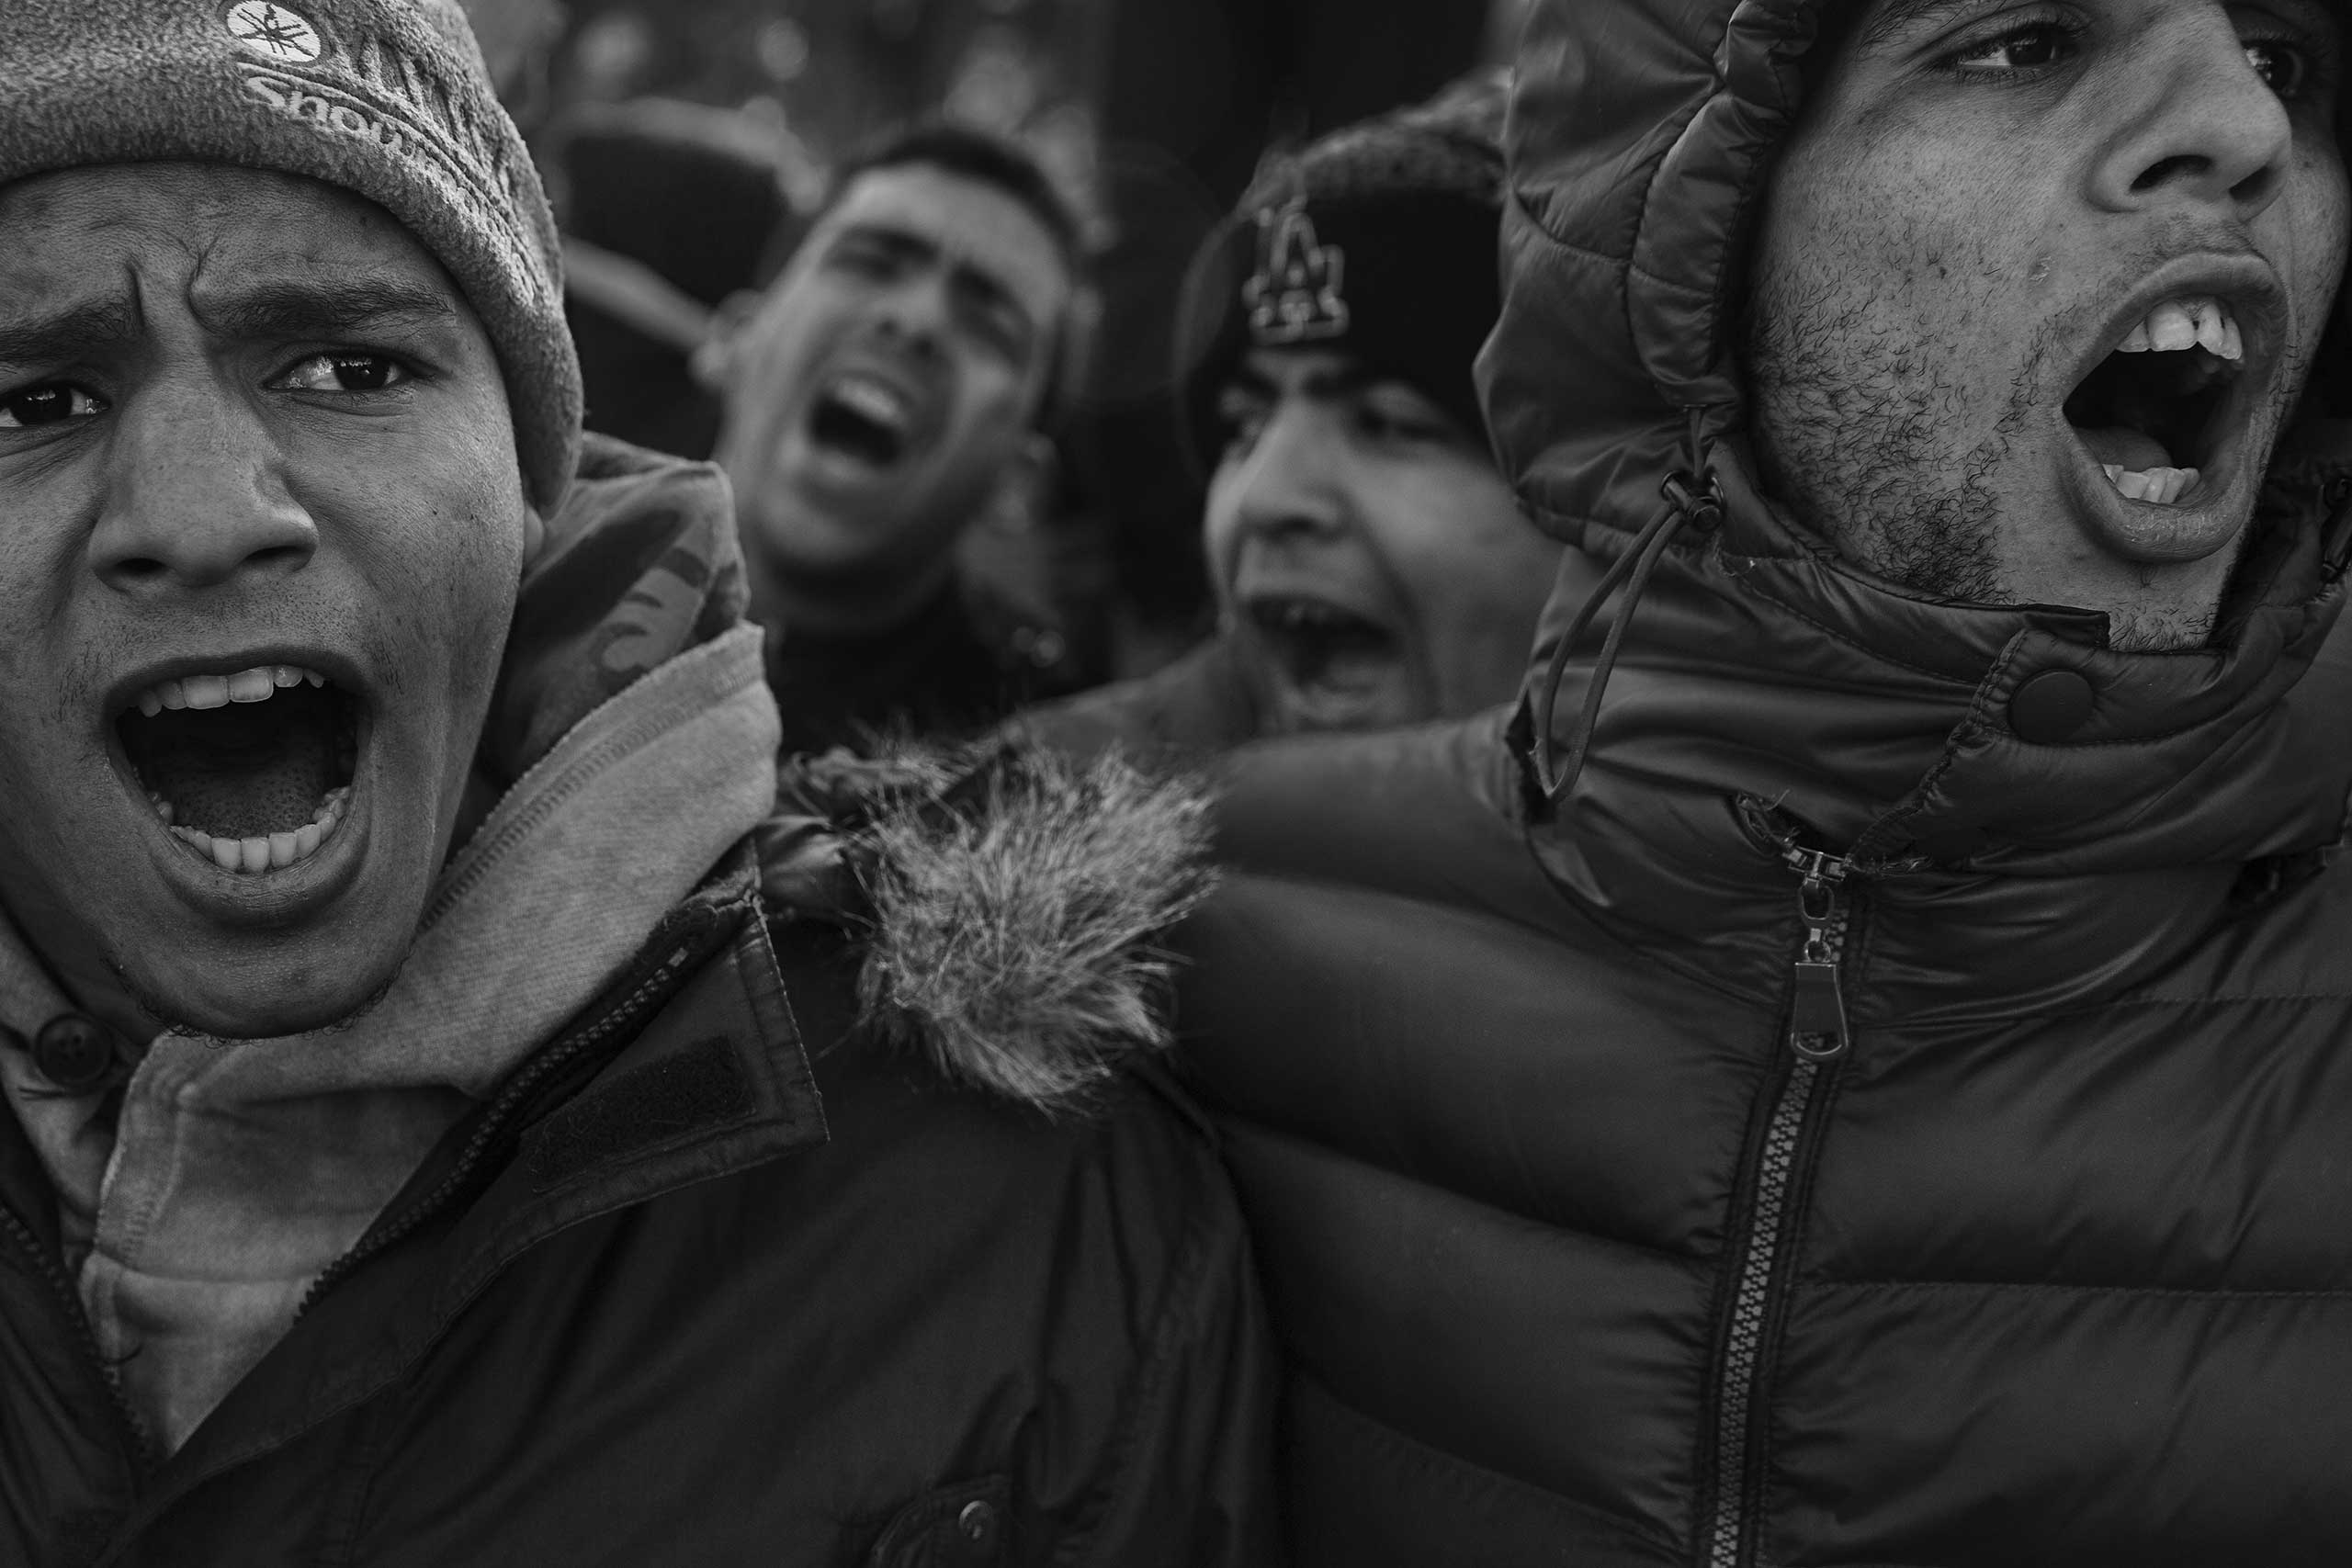 Iranian migrants shout during a demonstration at the Macedonian border in the Greek village of Idomeni after crossing was restricted only to migrants and refugees from the war torn countries of   Afghanistan, Iraq and Syria.